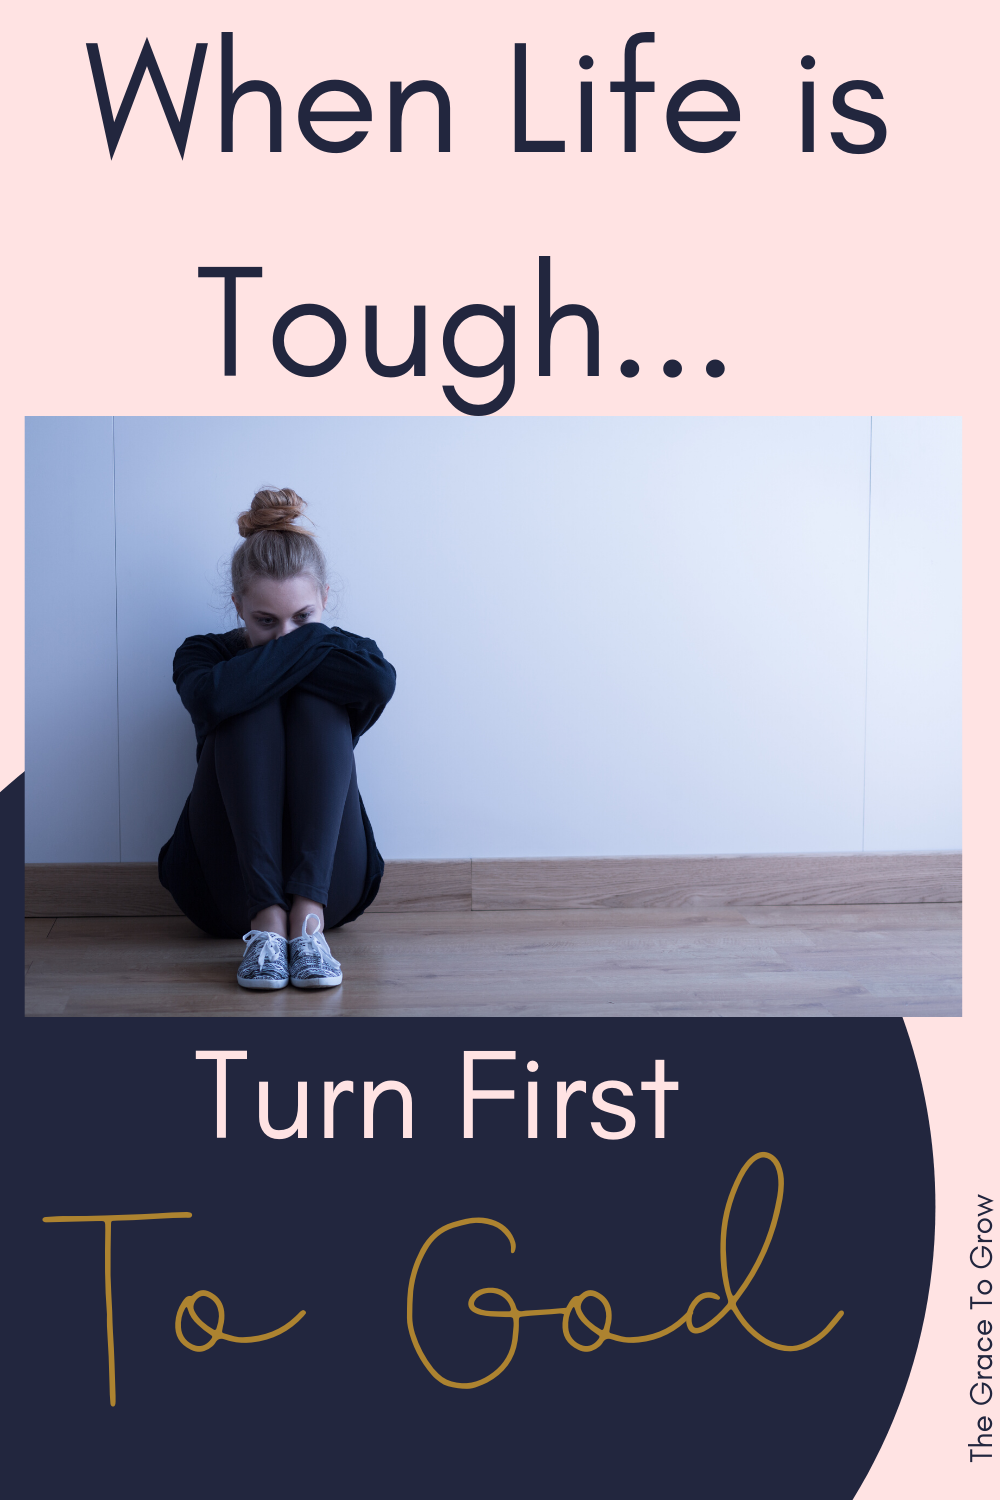 when-life-is-tough-turn-first-to-god-pinterest-image